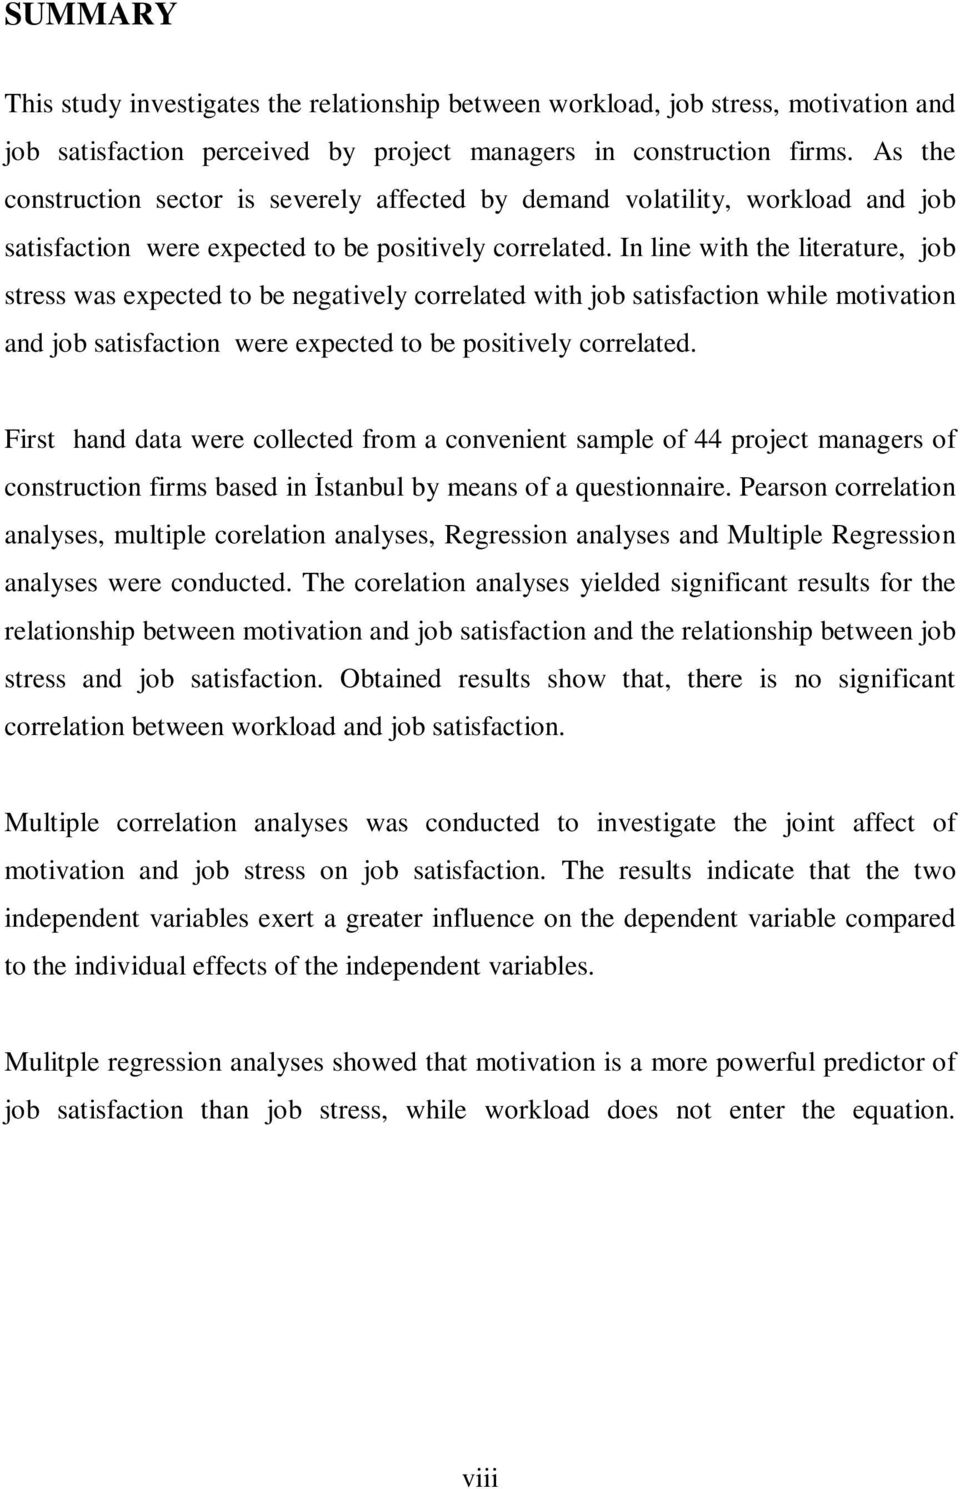 In line with the literature, job stress was expected to be negatively correlated with job satisfaction while motivation and job satisfaction were expected to be positively correlated.